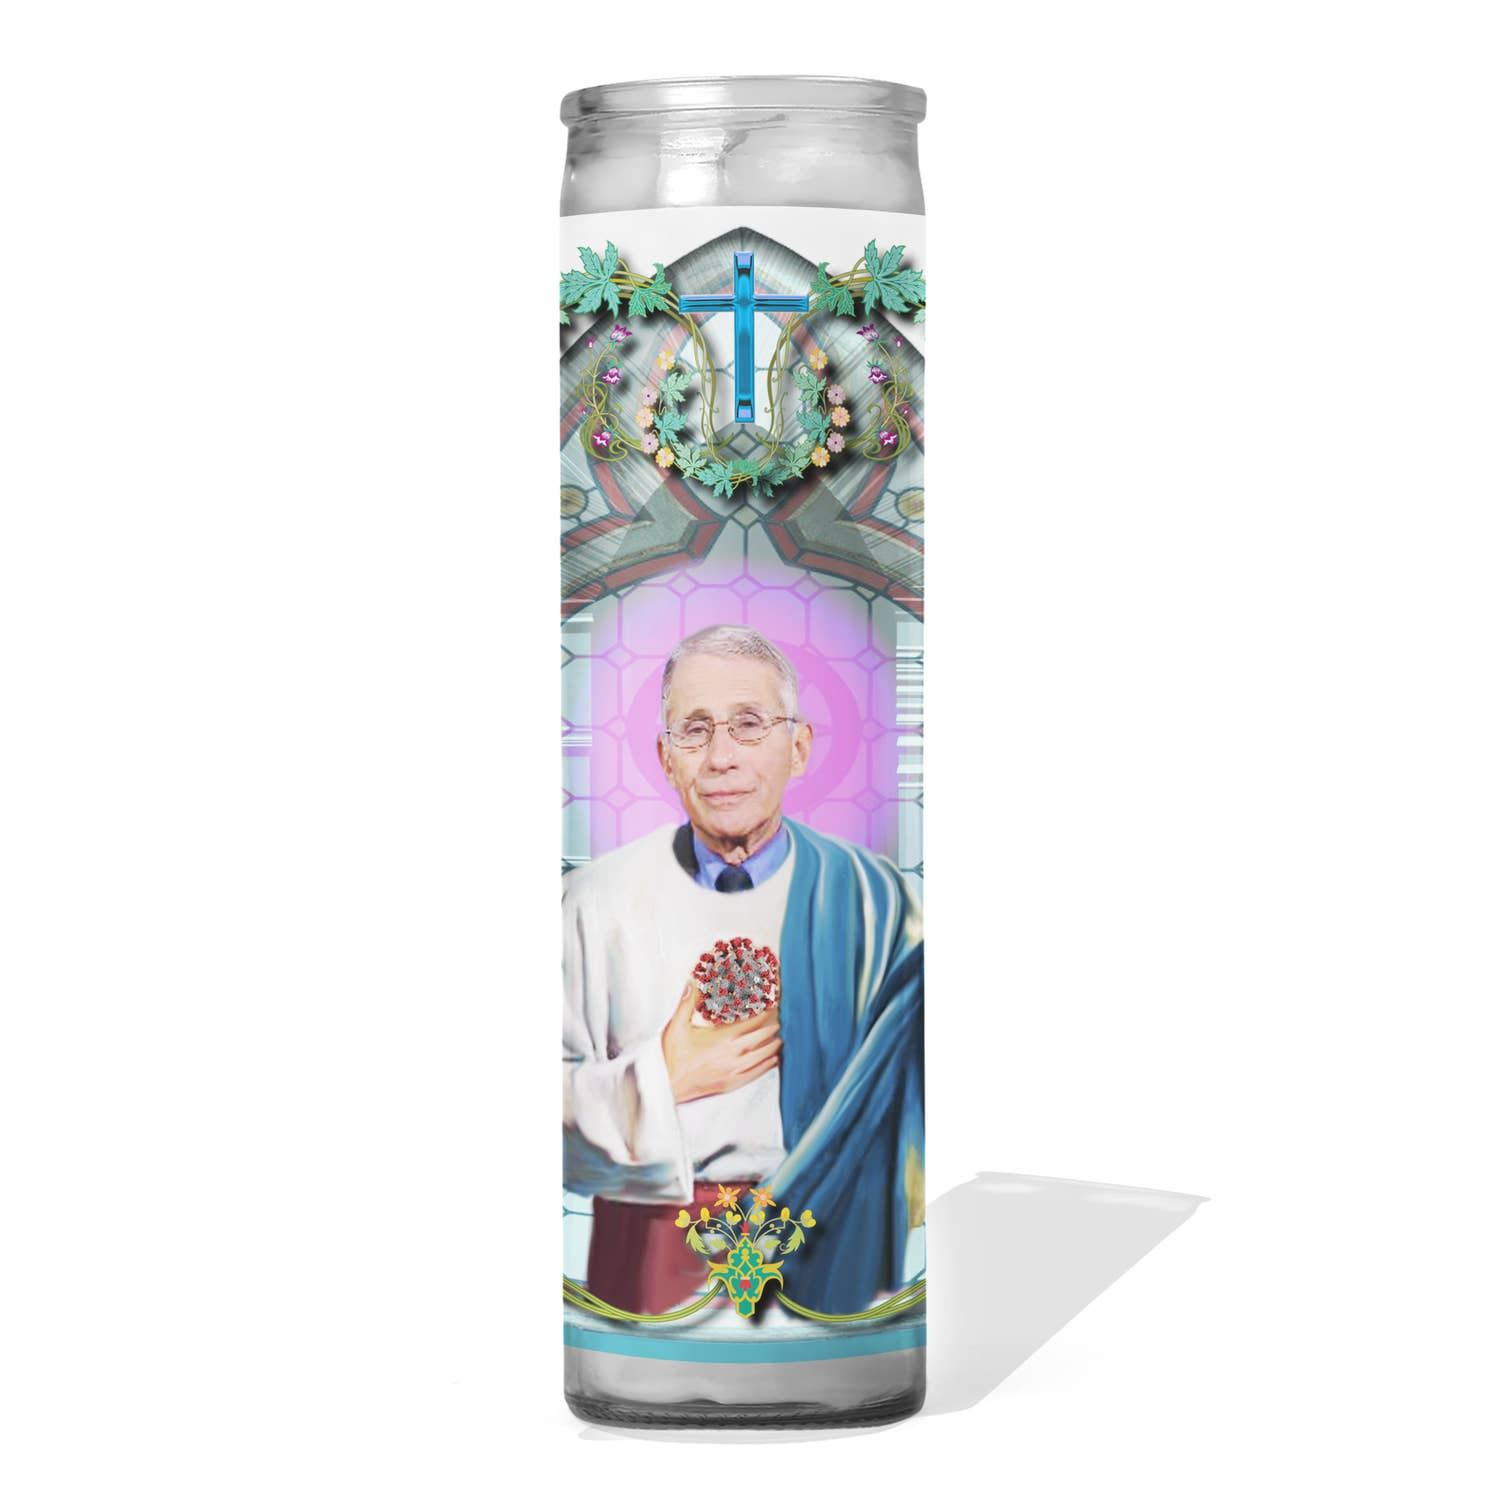 Dr Fauci Funny Prayer Candle - Aspen Lane